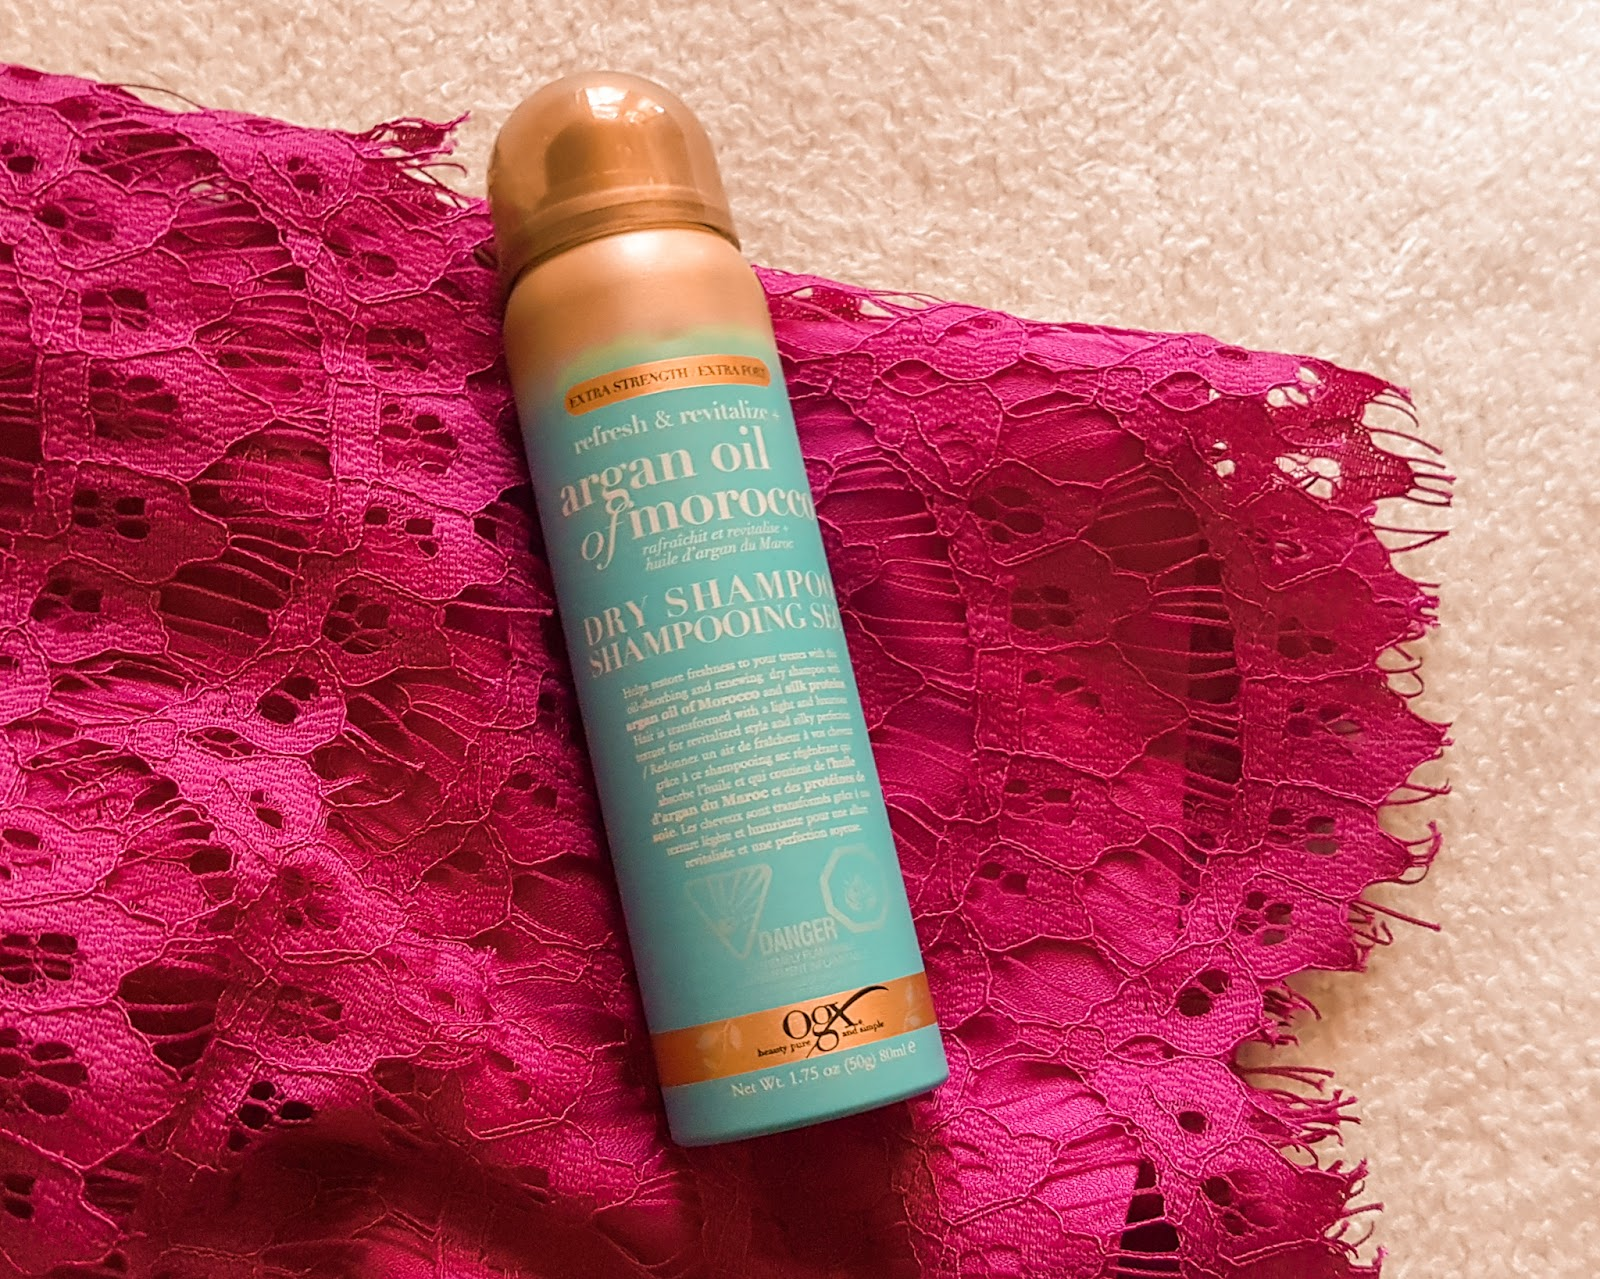 Great smelling dry shampoo made with argan oil from morocco